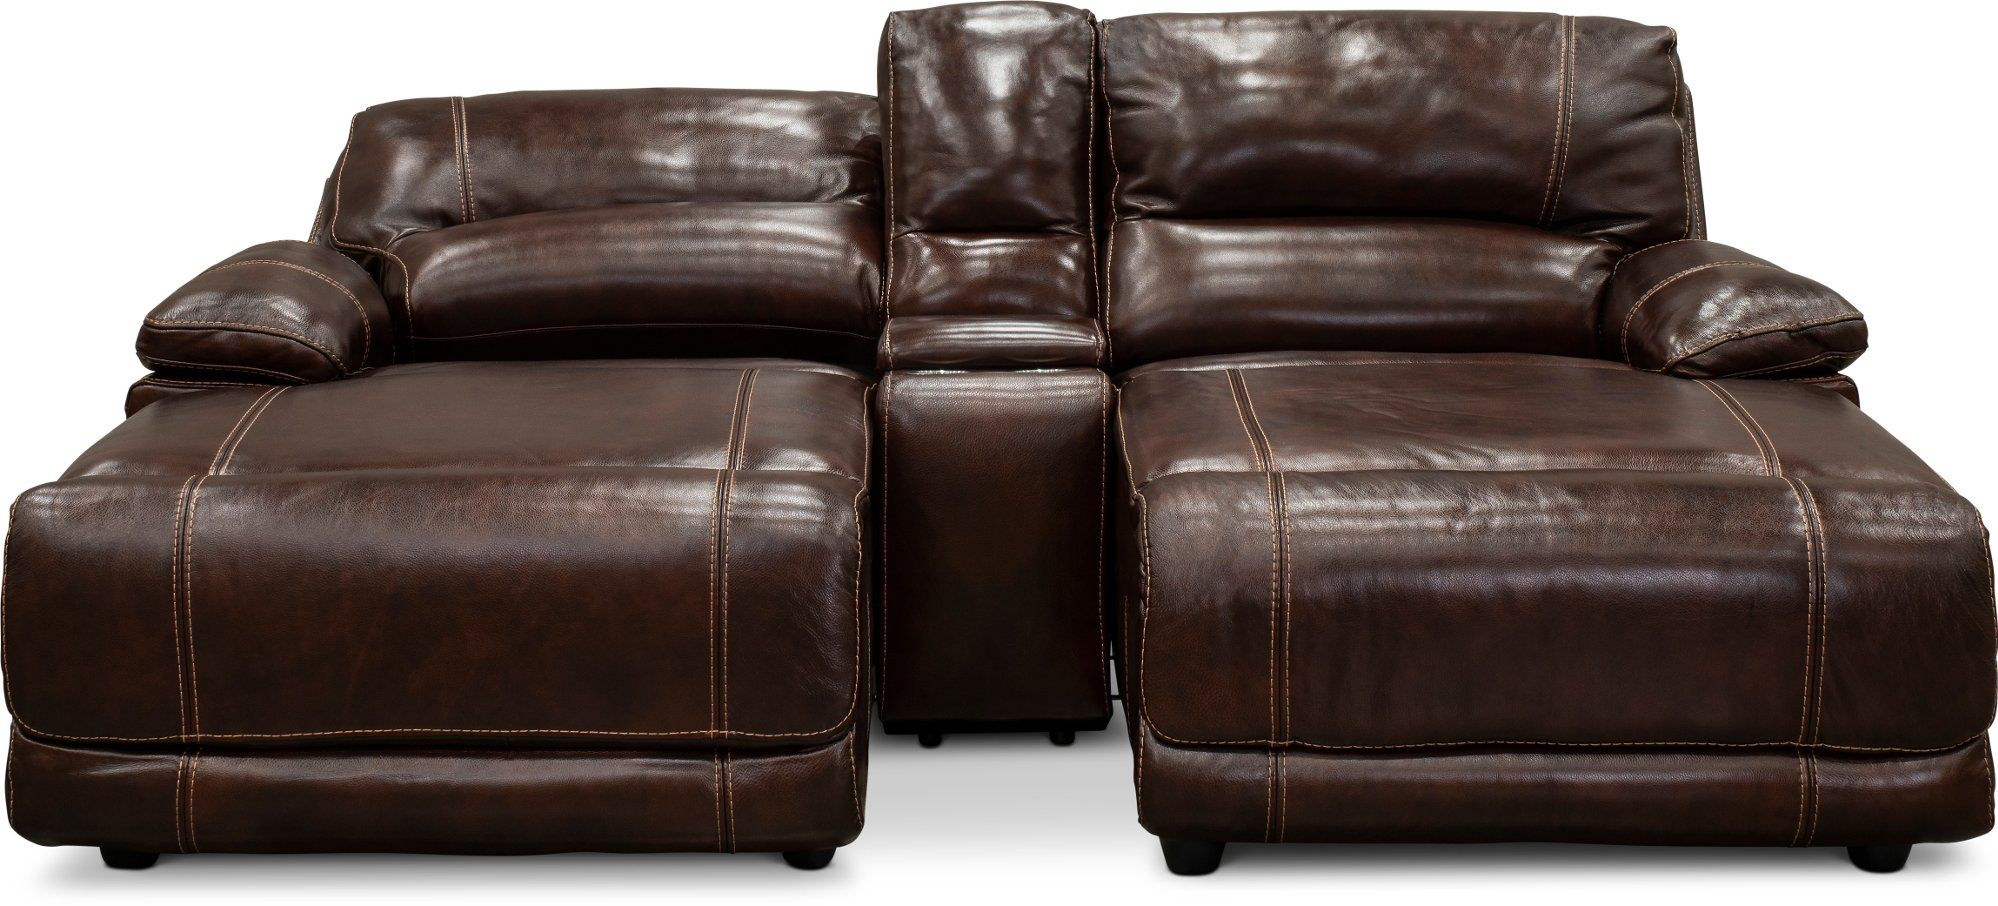 Brown leathermatch reclining double chaise sofa with